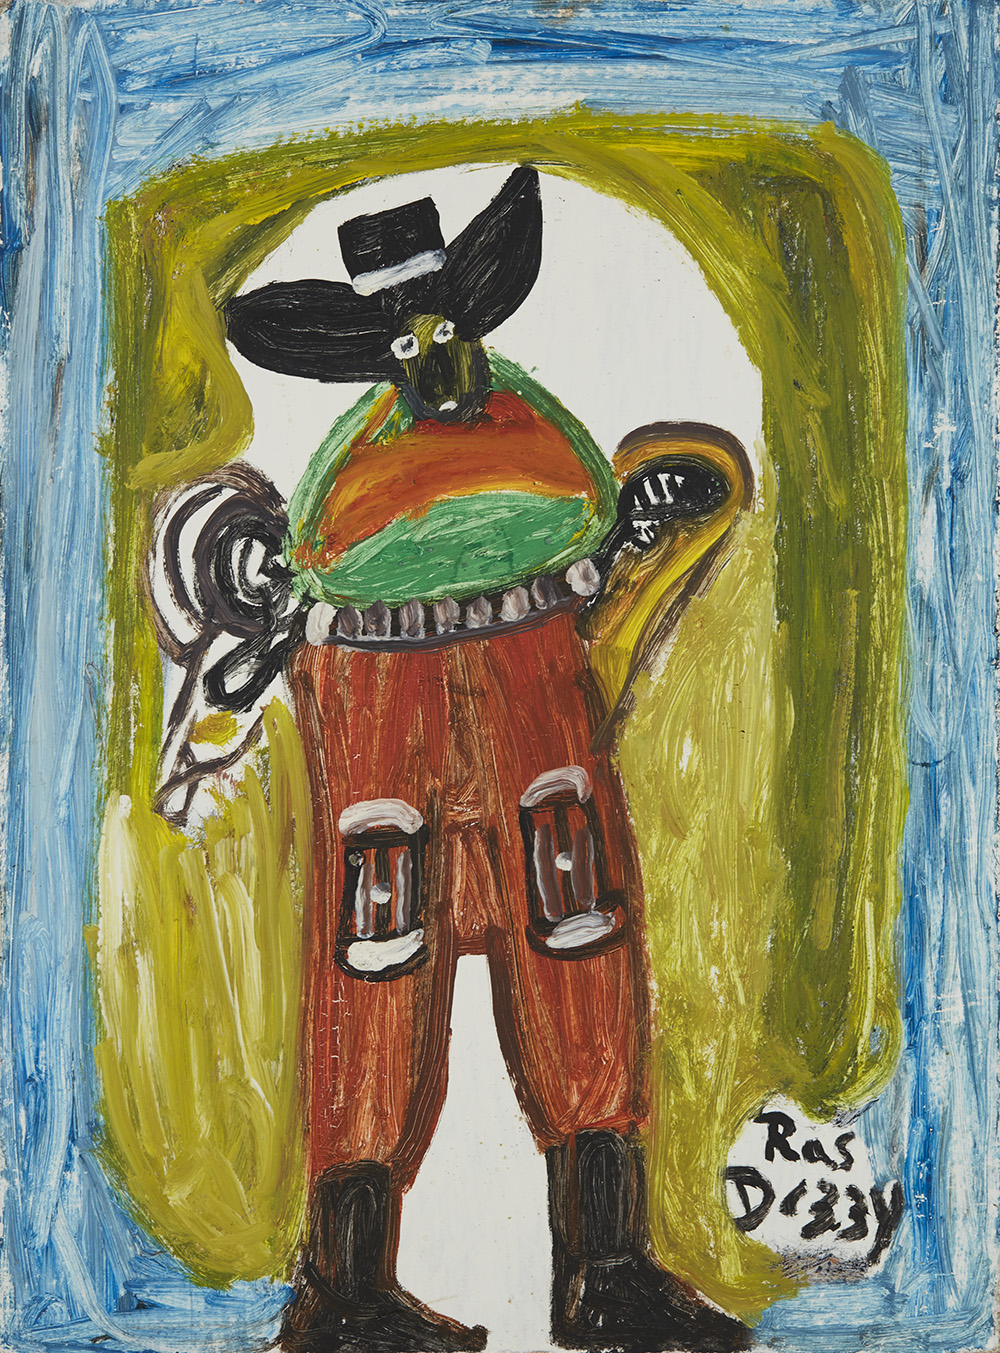 Ras Dizzy Tomi Scott - One of the Shefield Cowboys, 1988 Tempera on matboard 20.5 x 14.24 inches 52.1 x 36.2 cm RD 7